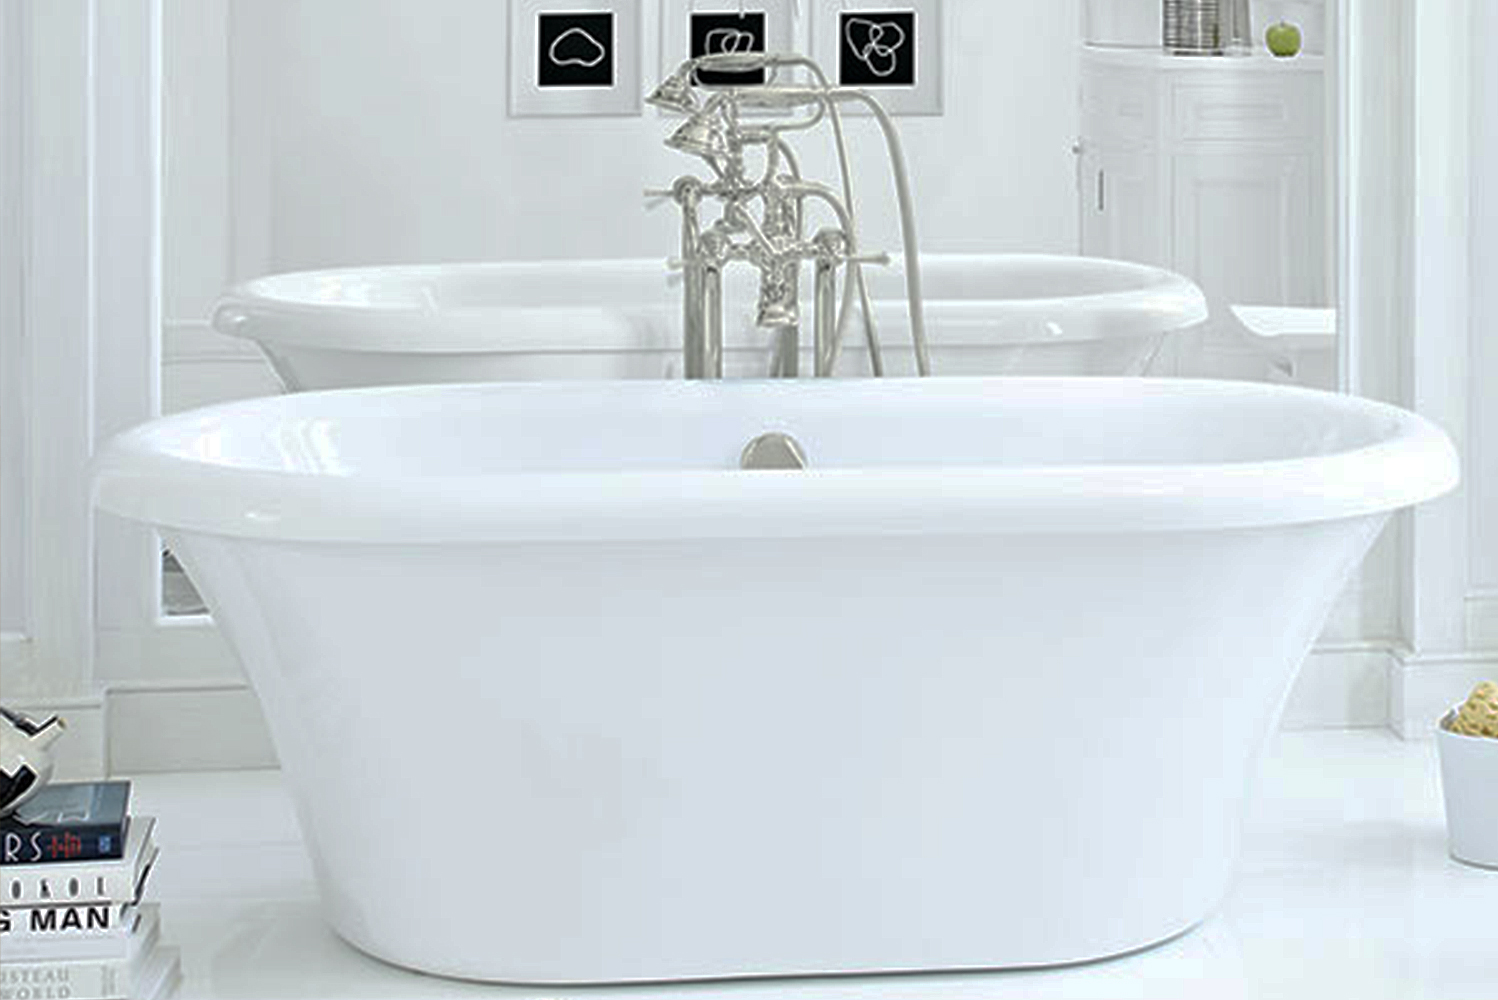 Introducing the St. George freestanding soaking tub by DXV.